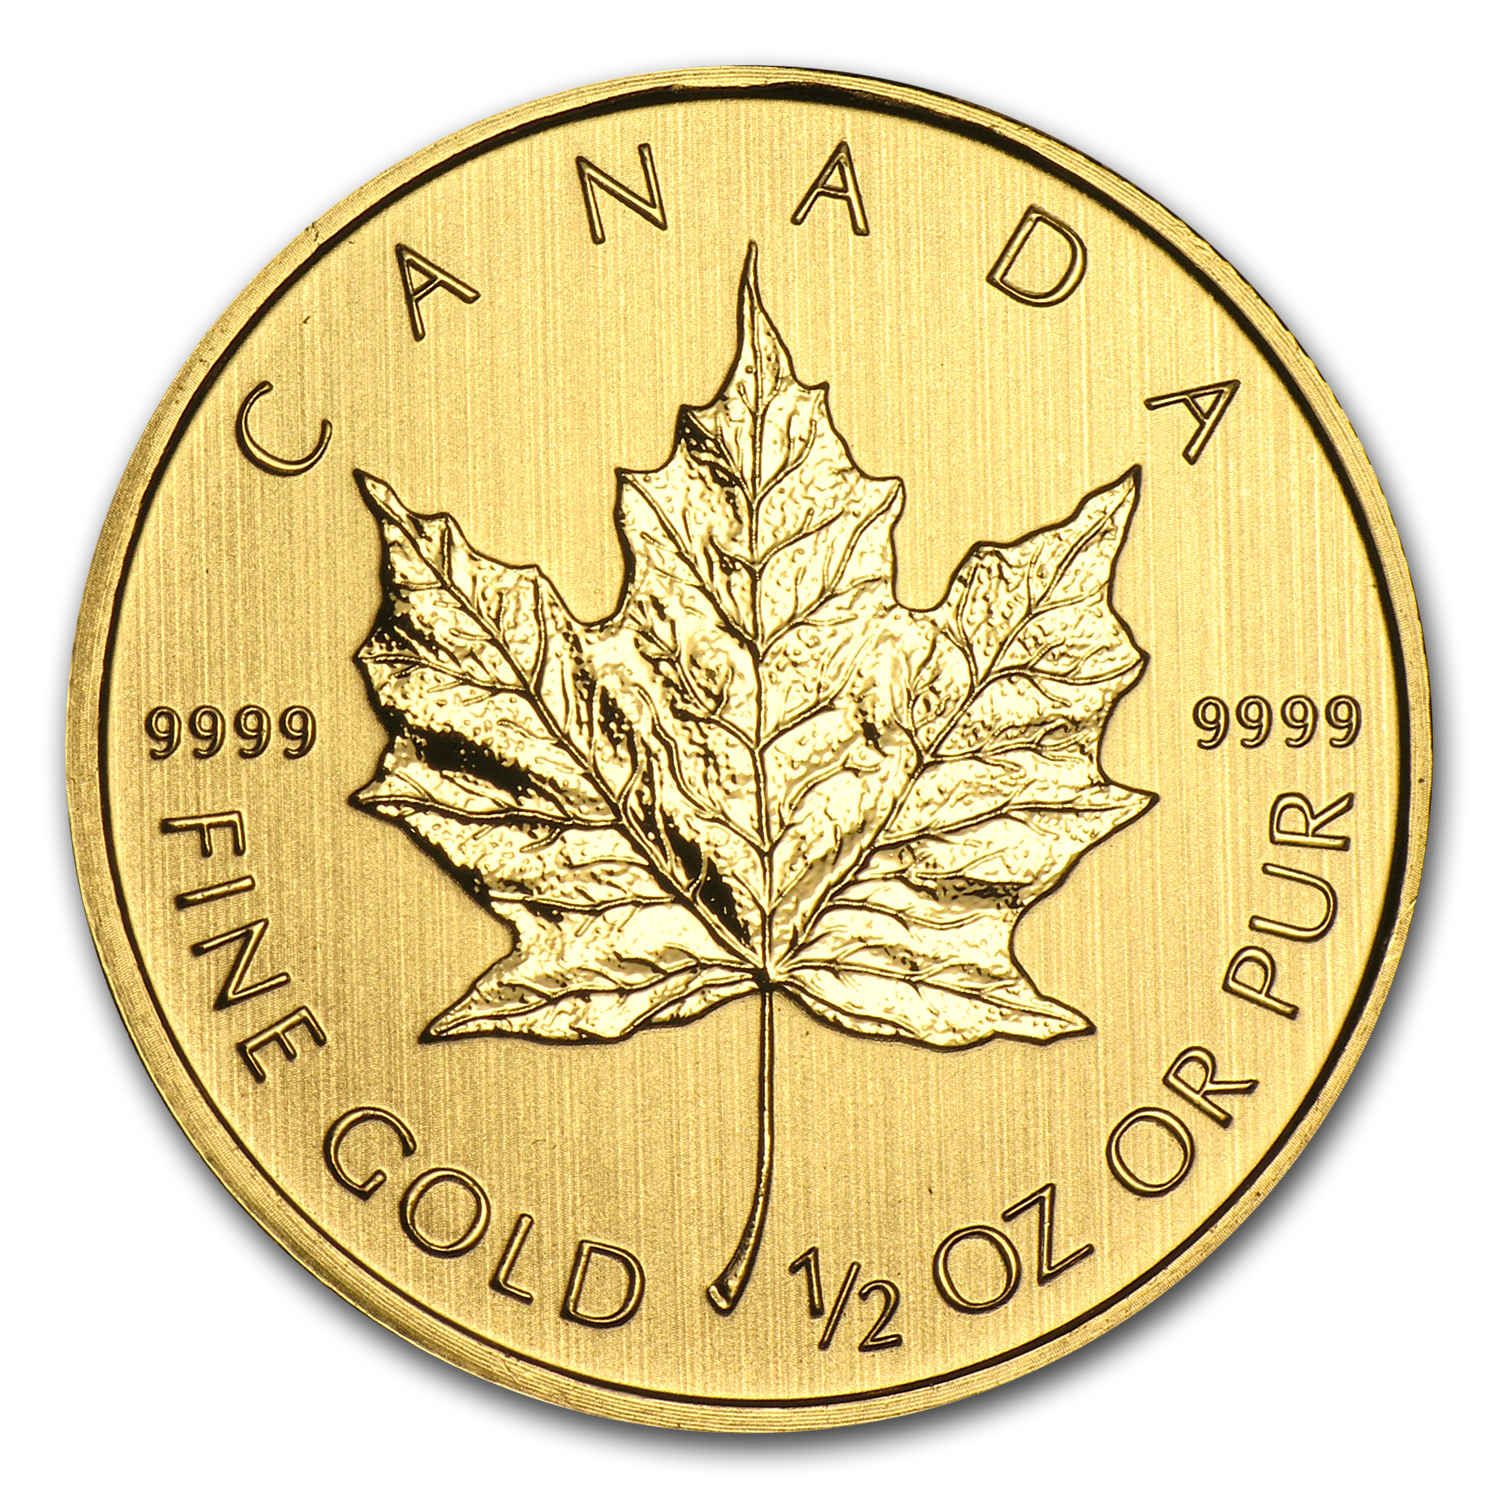 2012 Canada 1/2 oz Gold Maple Leaf BU